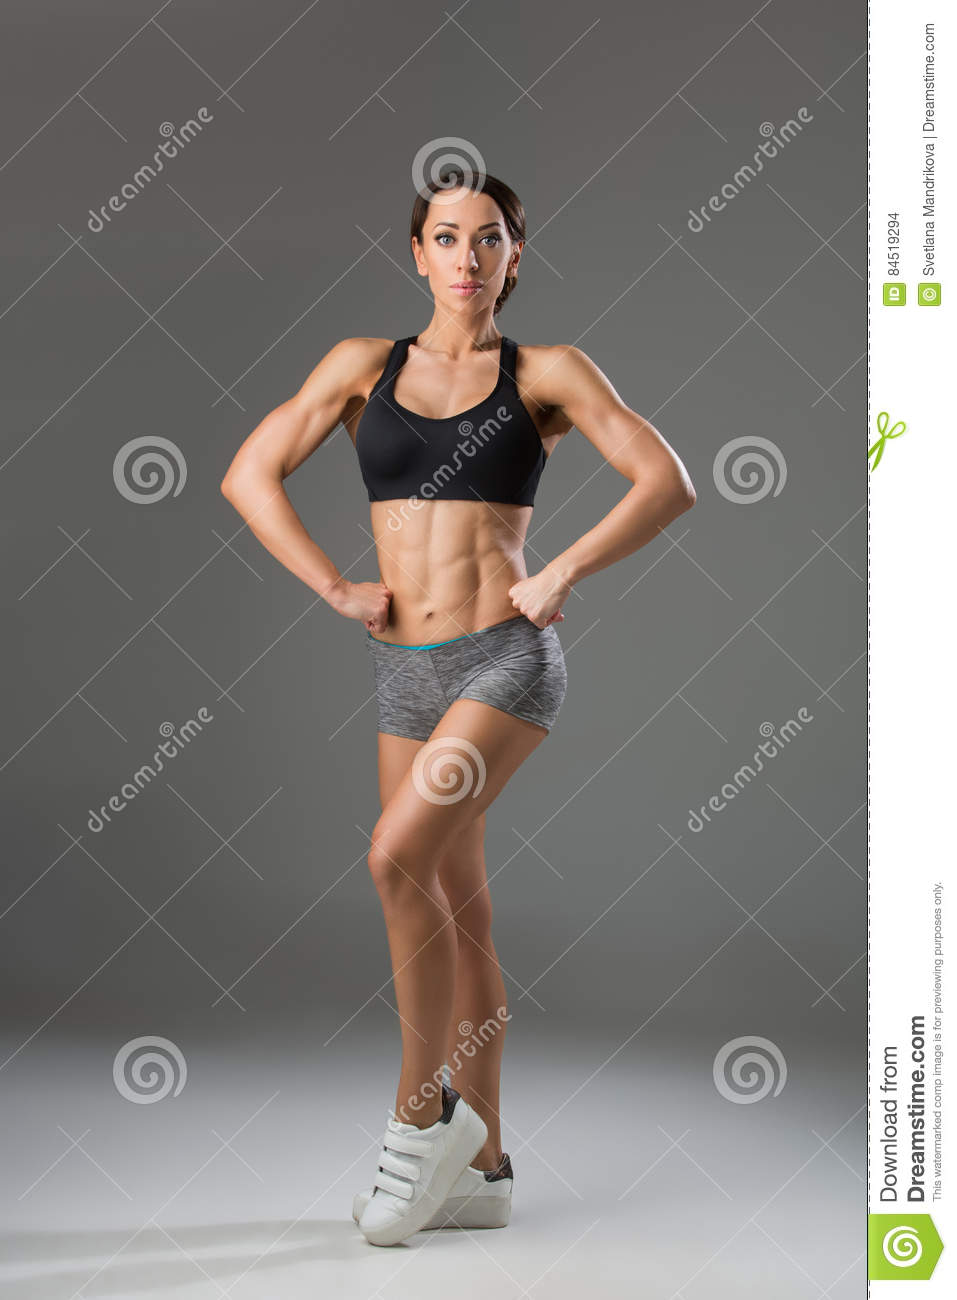 f5b67faa06 Beautiful fit muscular young woman in sport bra and shorts over grey  background. Perfect body. Studio shot. Copy space.